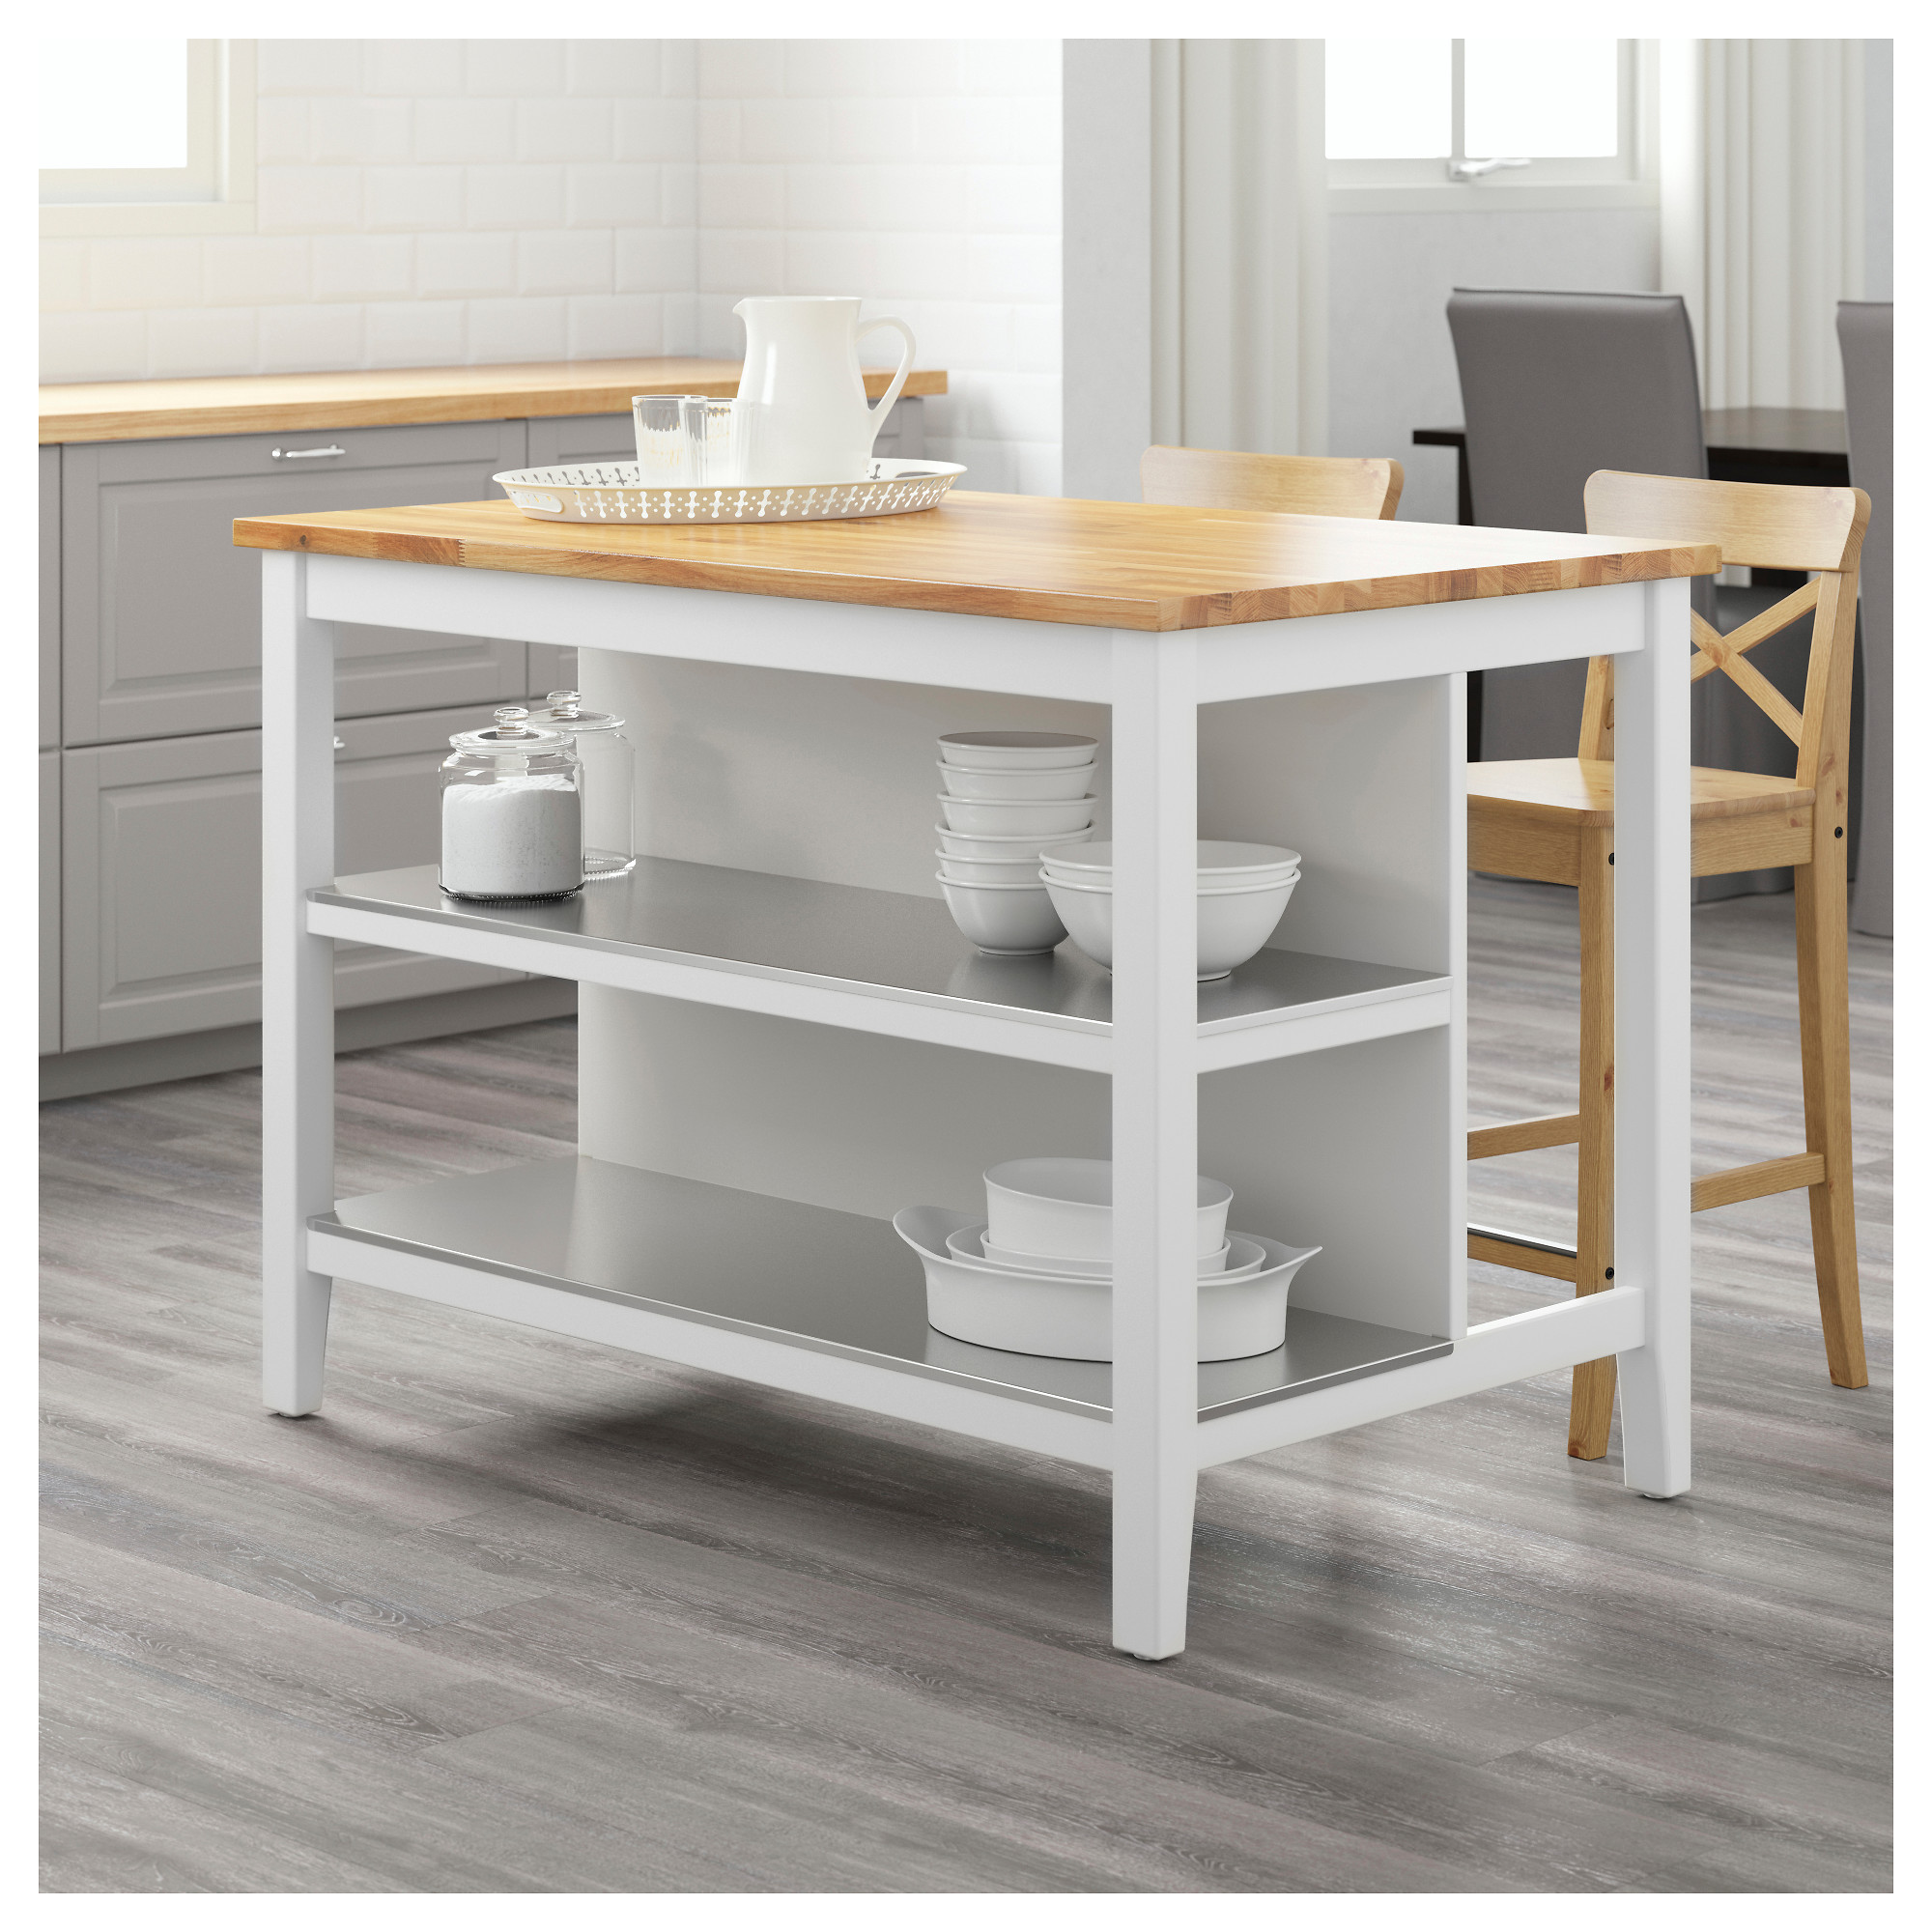 Kitchen Island stenstorp kitchen island - ikea